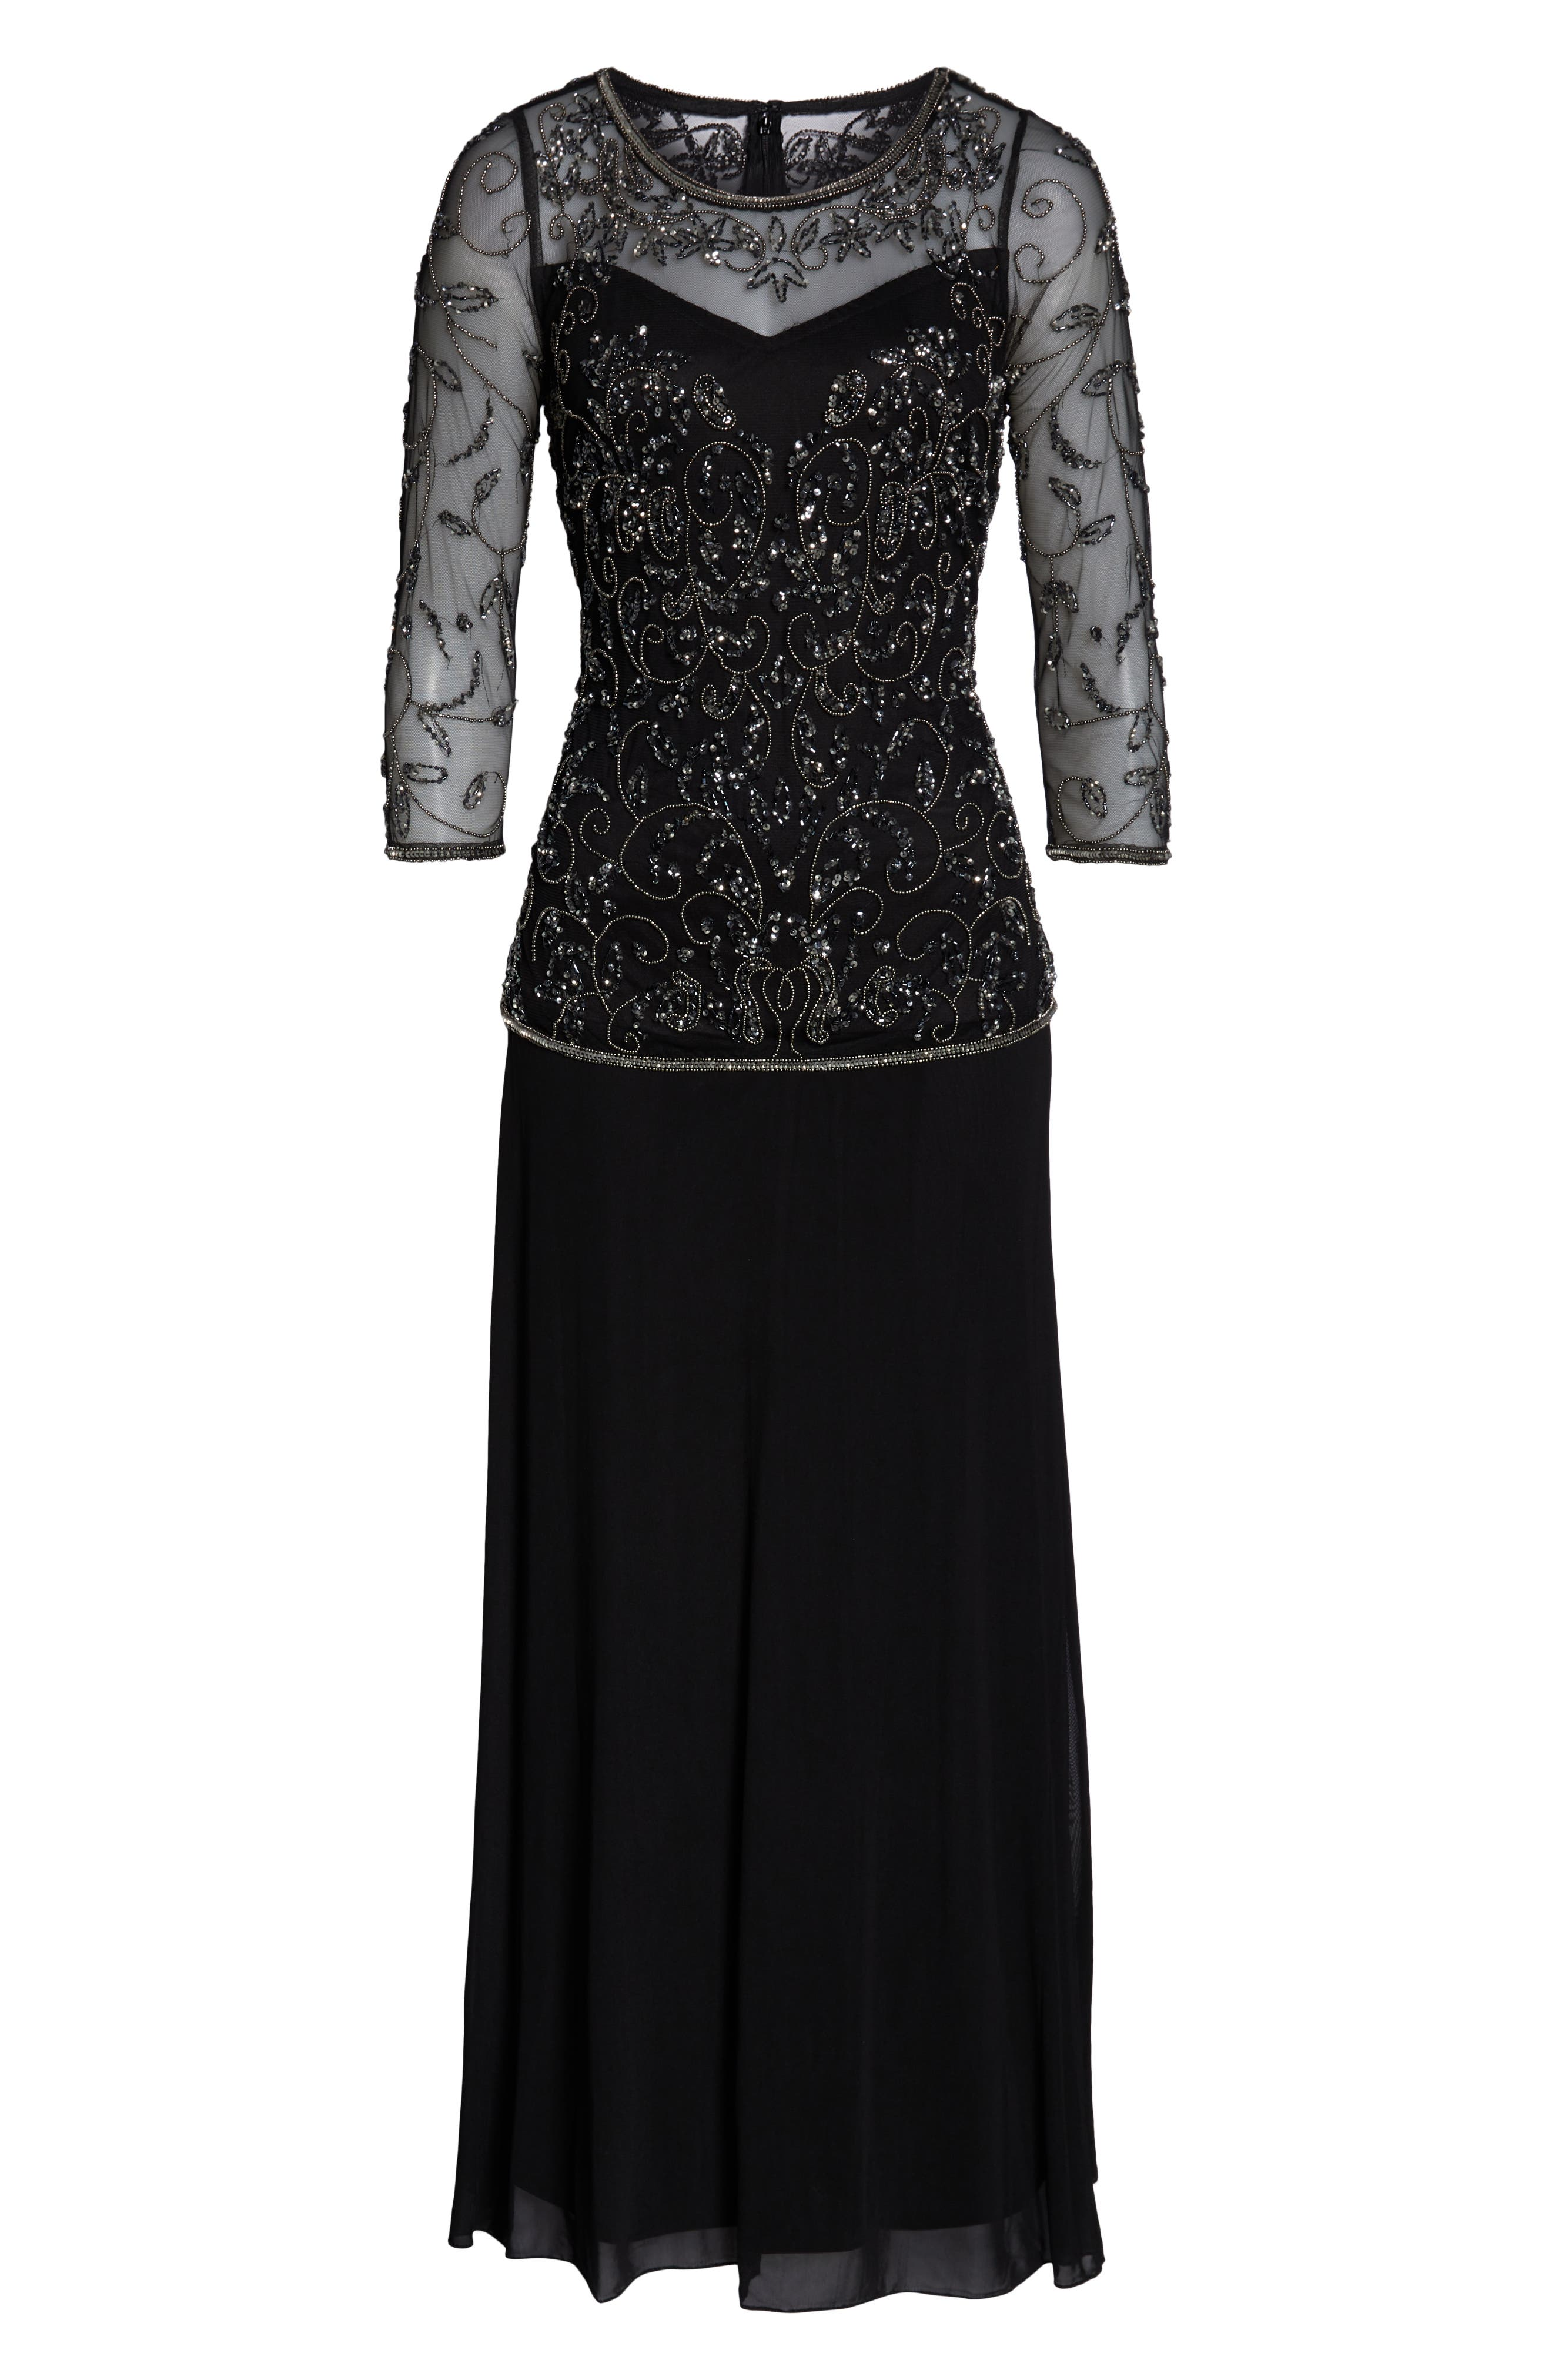 PISARRO NIGHTS, Beaded Mesh Mock Two-Piece Gown, Alternate thumbnail 8, color, 001